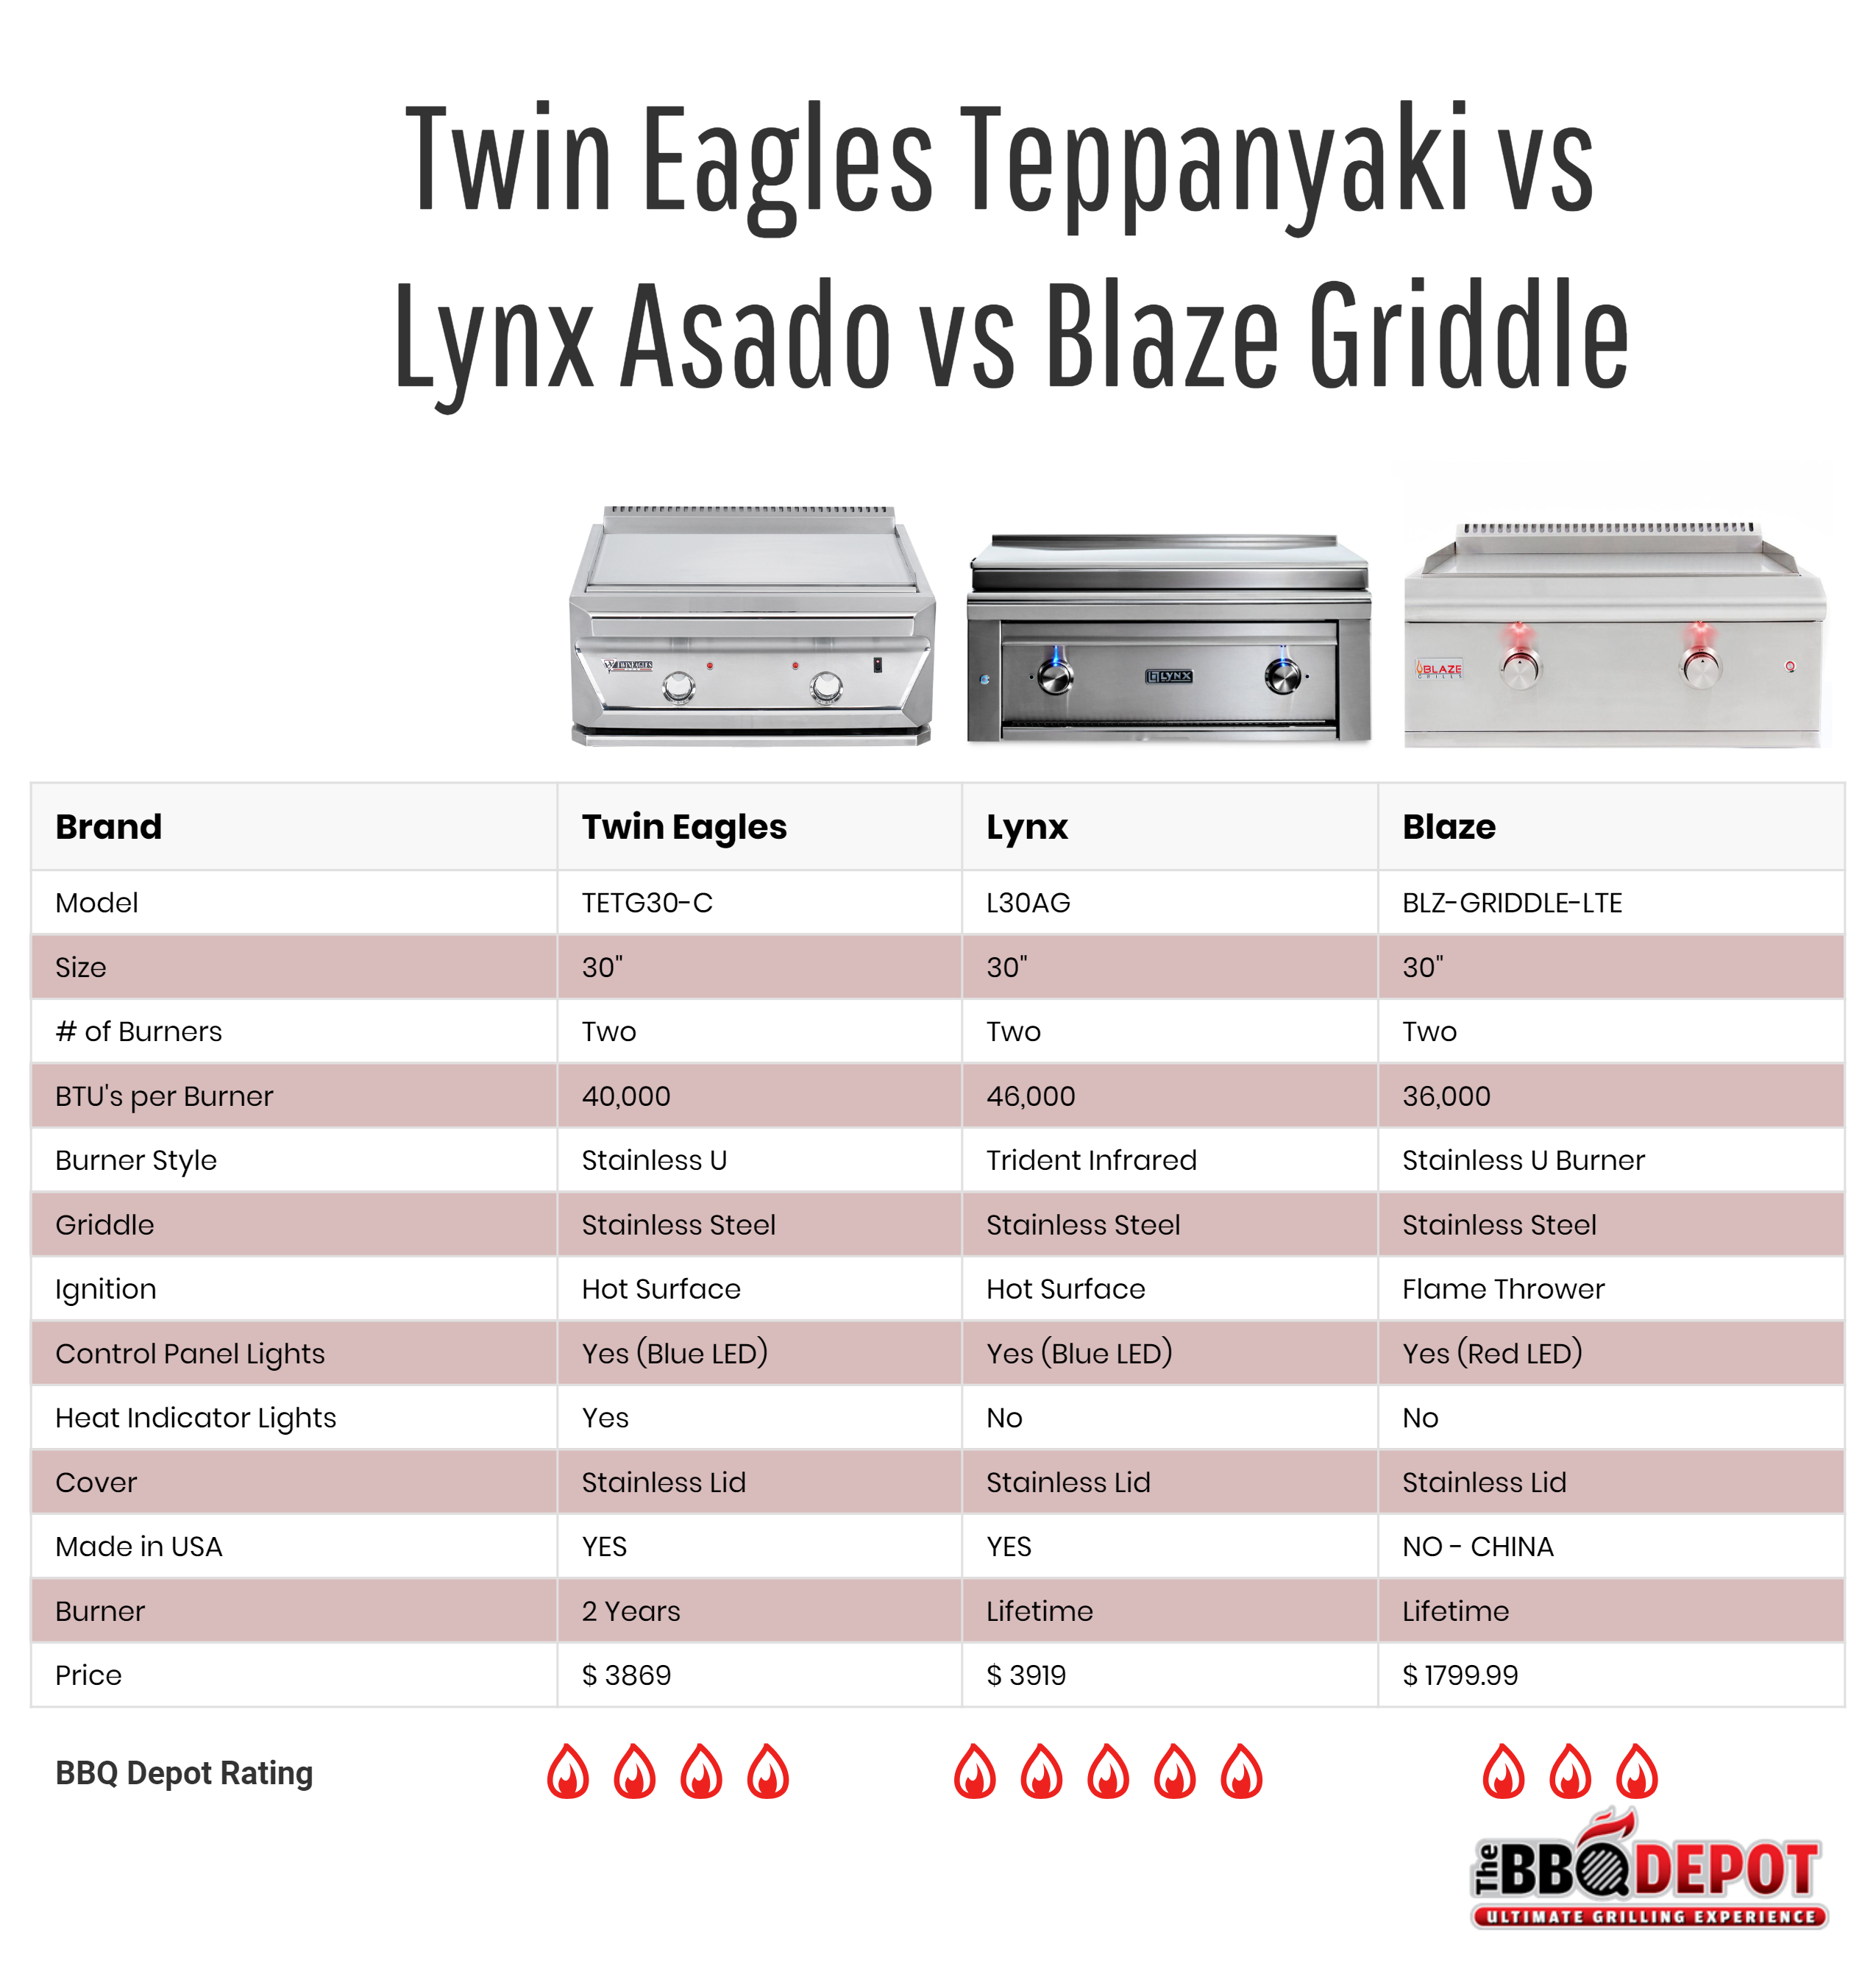 Twin Eagles Teppanyaki vs Lynx Asado vs Blaze Griddle